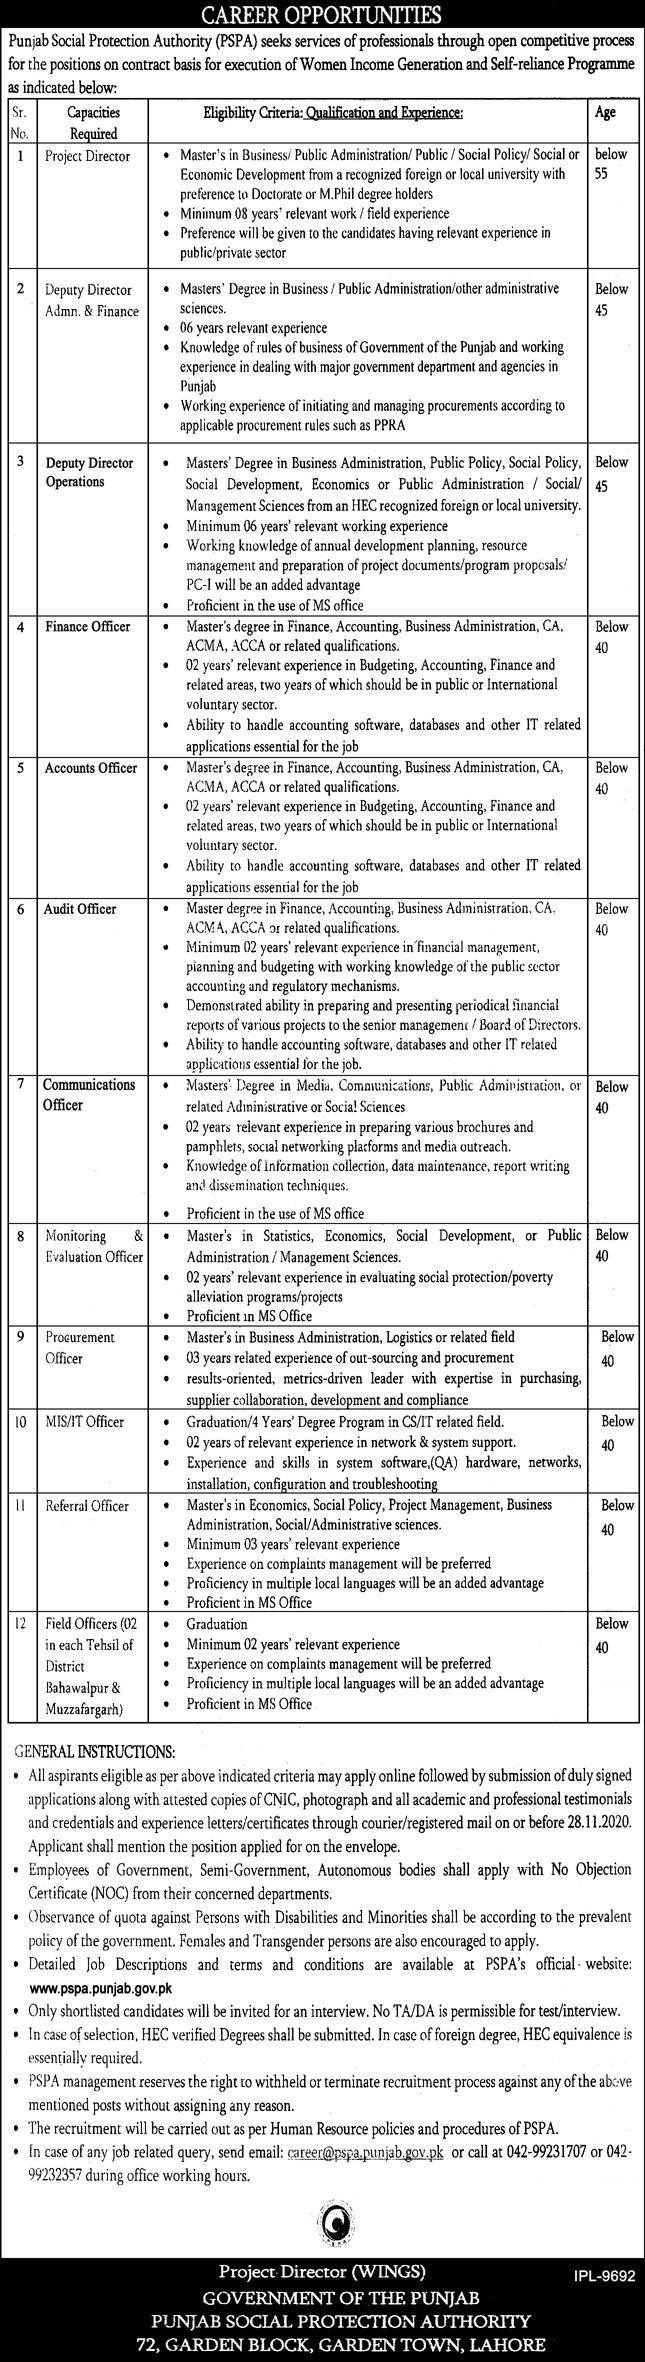 Punjab Social Protection Authority (PSPA) Jobs 11th November 2020